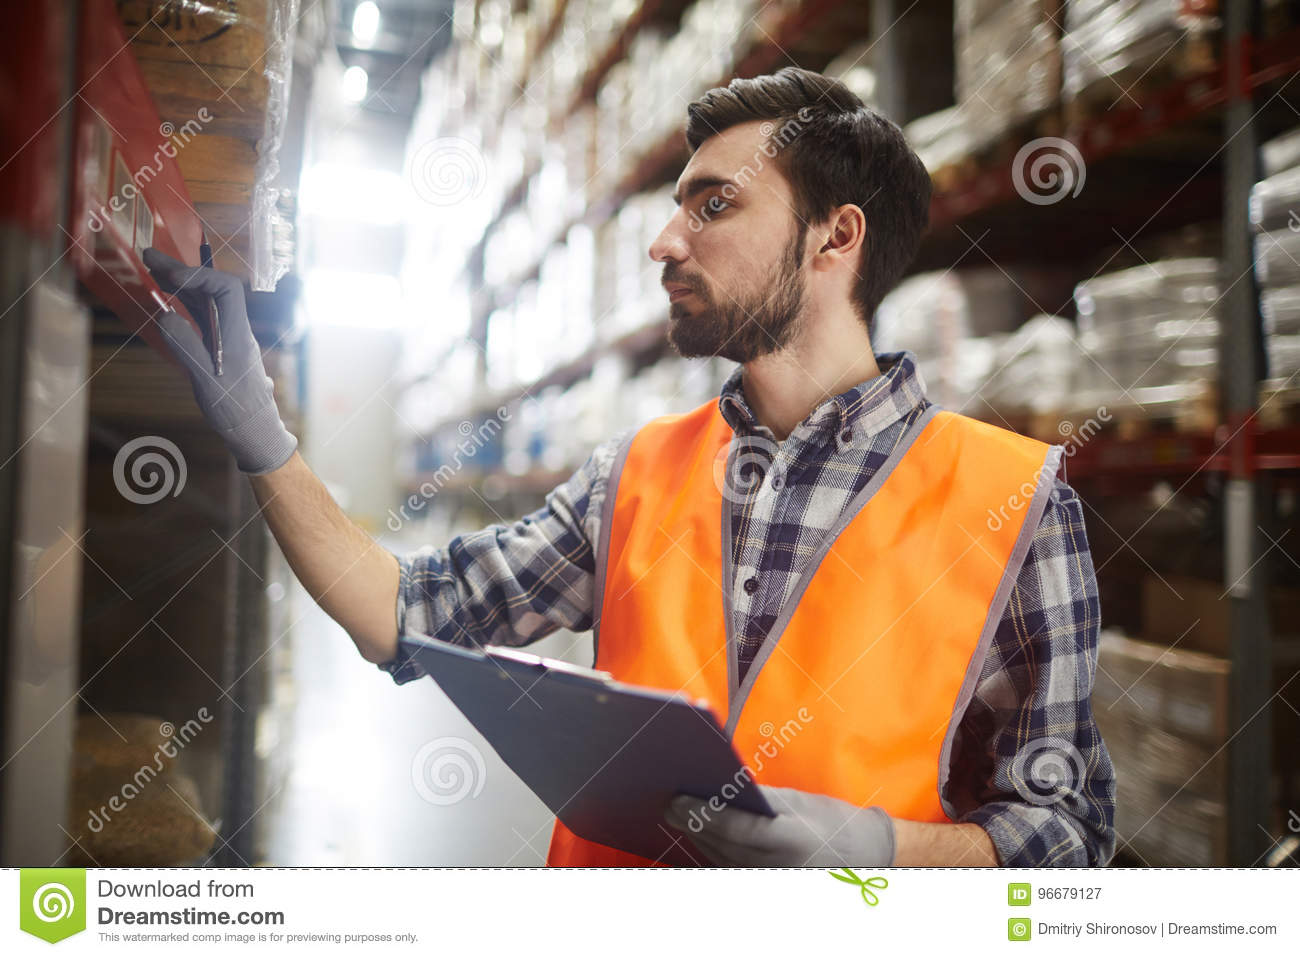 Warehouse worker reviewing goods